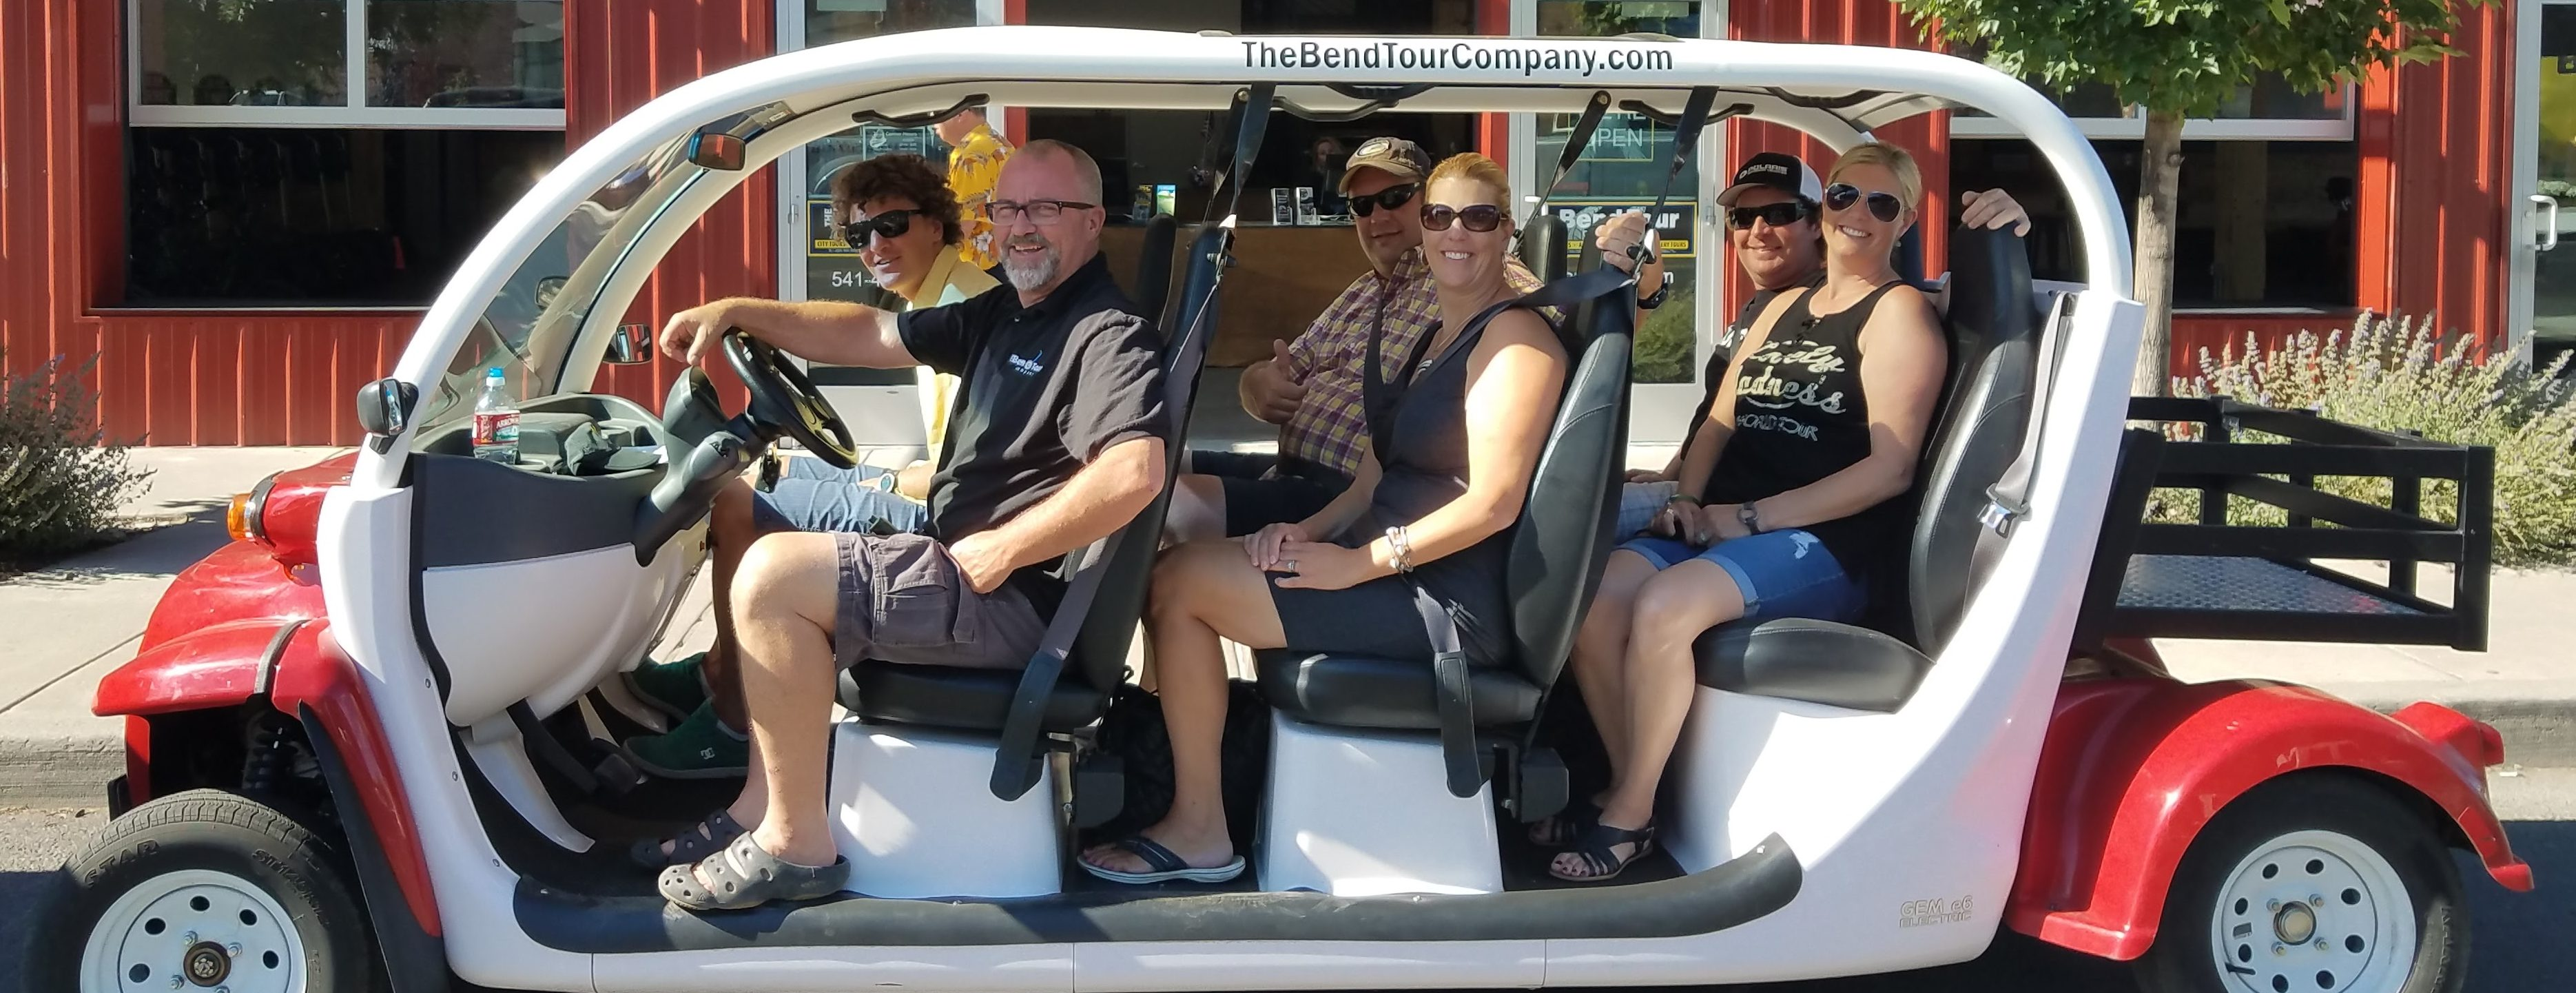 Electric Cruiser Car Tours